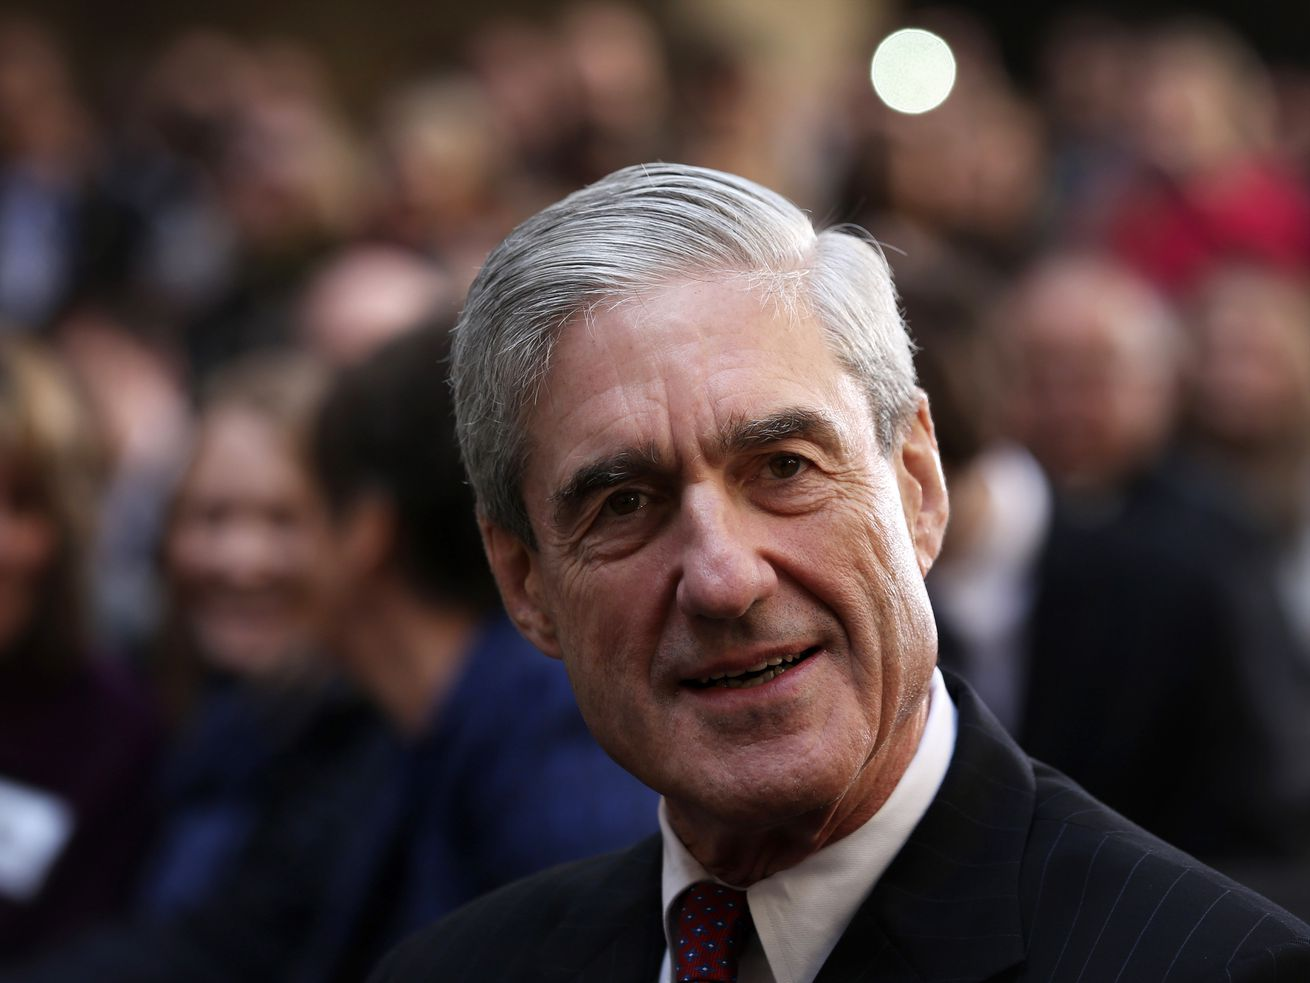 Special counsel Robert Mueller's new indictment against 12 Russian spies came out just before President Trump's summit with Russian leader Vladimir Putin.